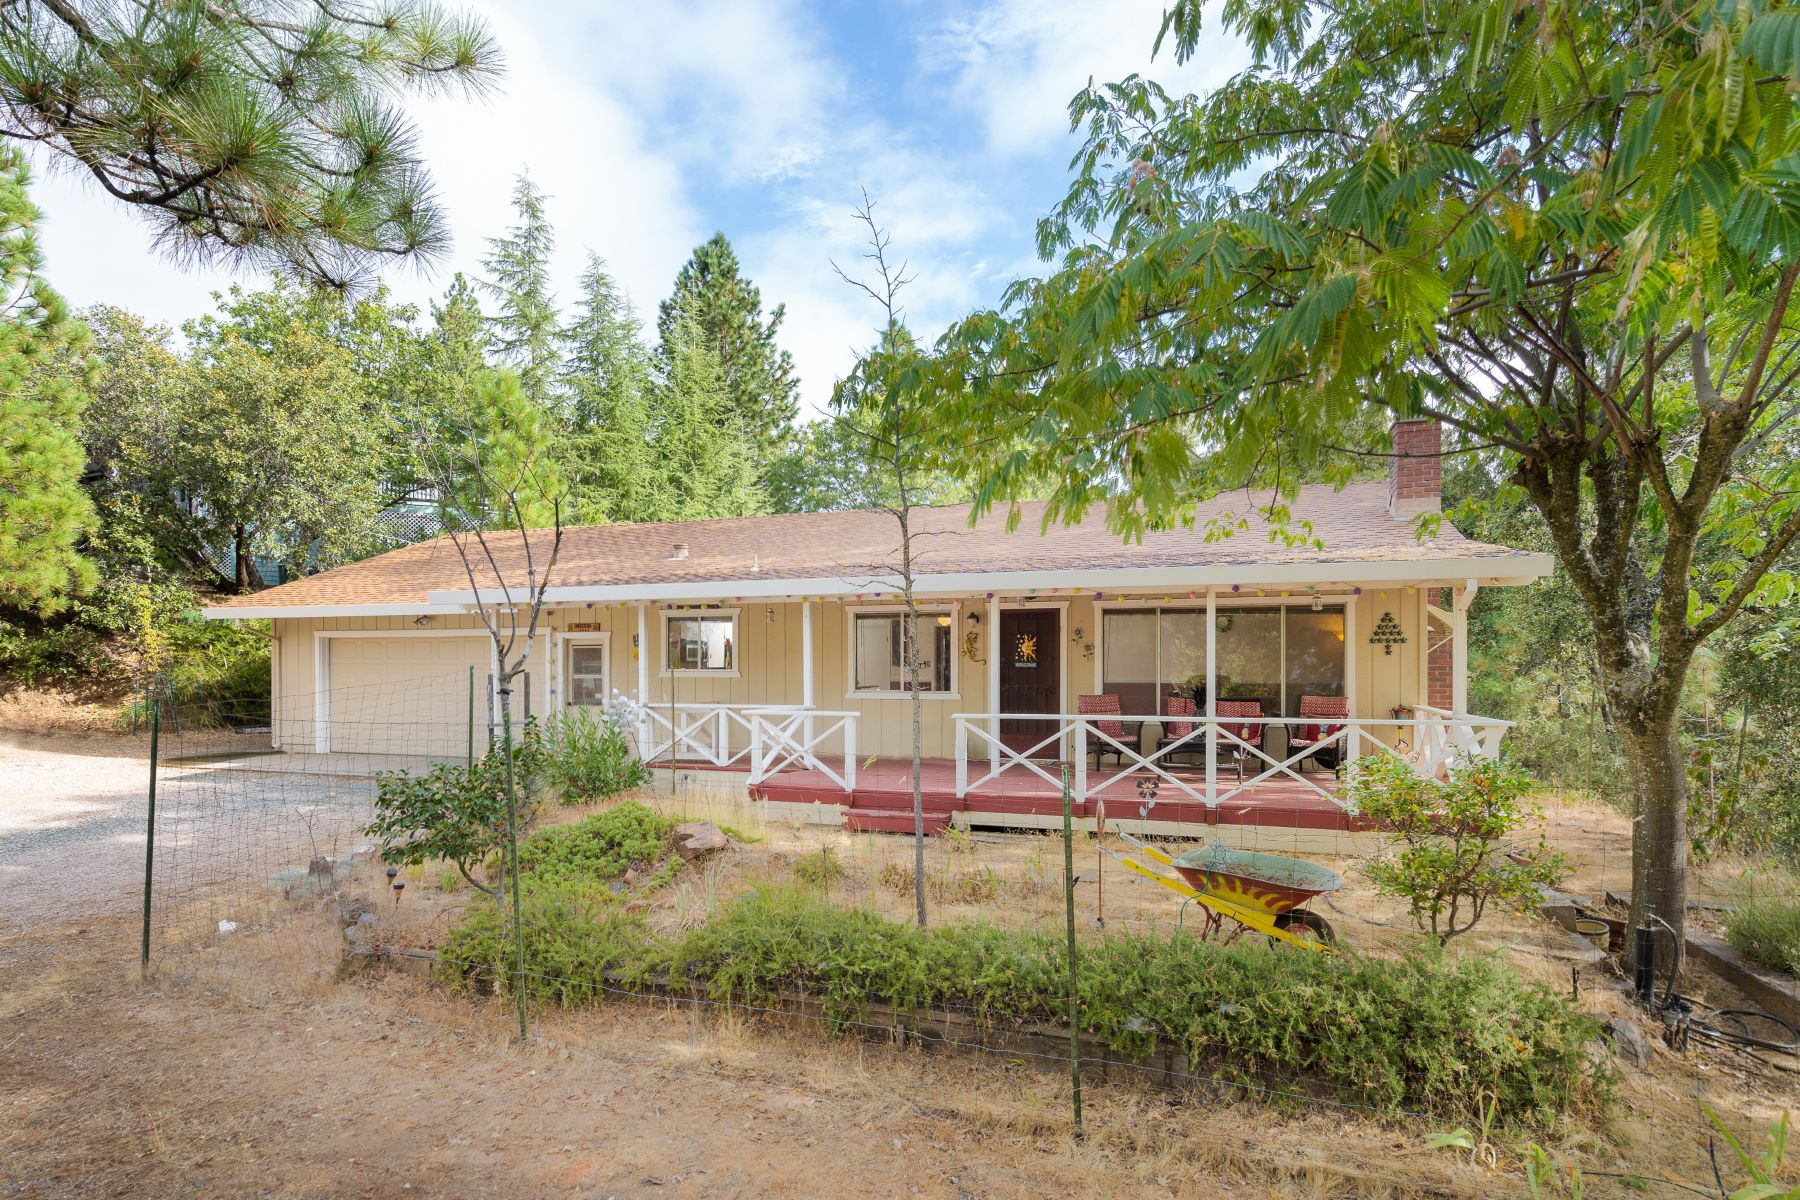 Single Family Homes for Sale at Charming Cottage with Cul-de-sac Location 12328 Eldel Road Pine Grove, California 95665 United States